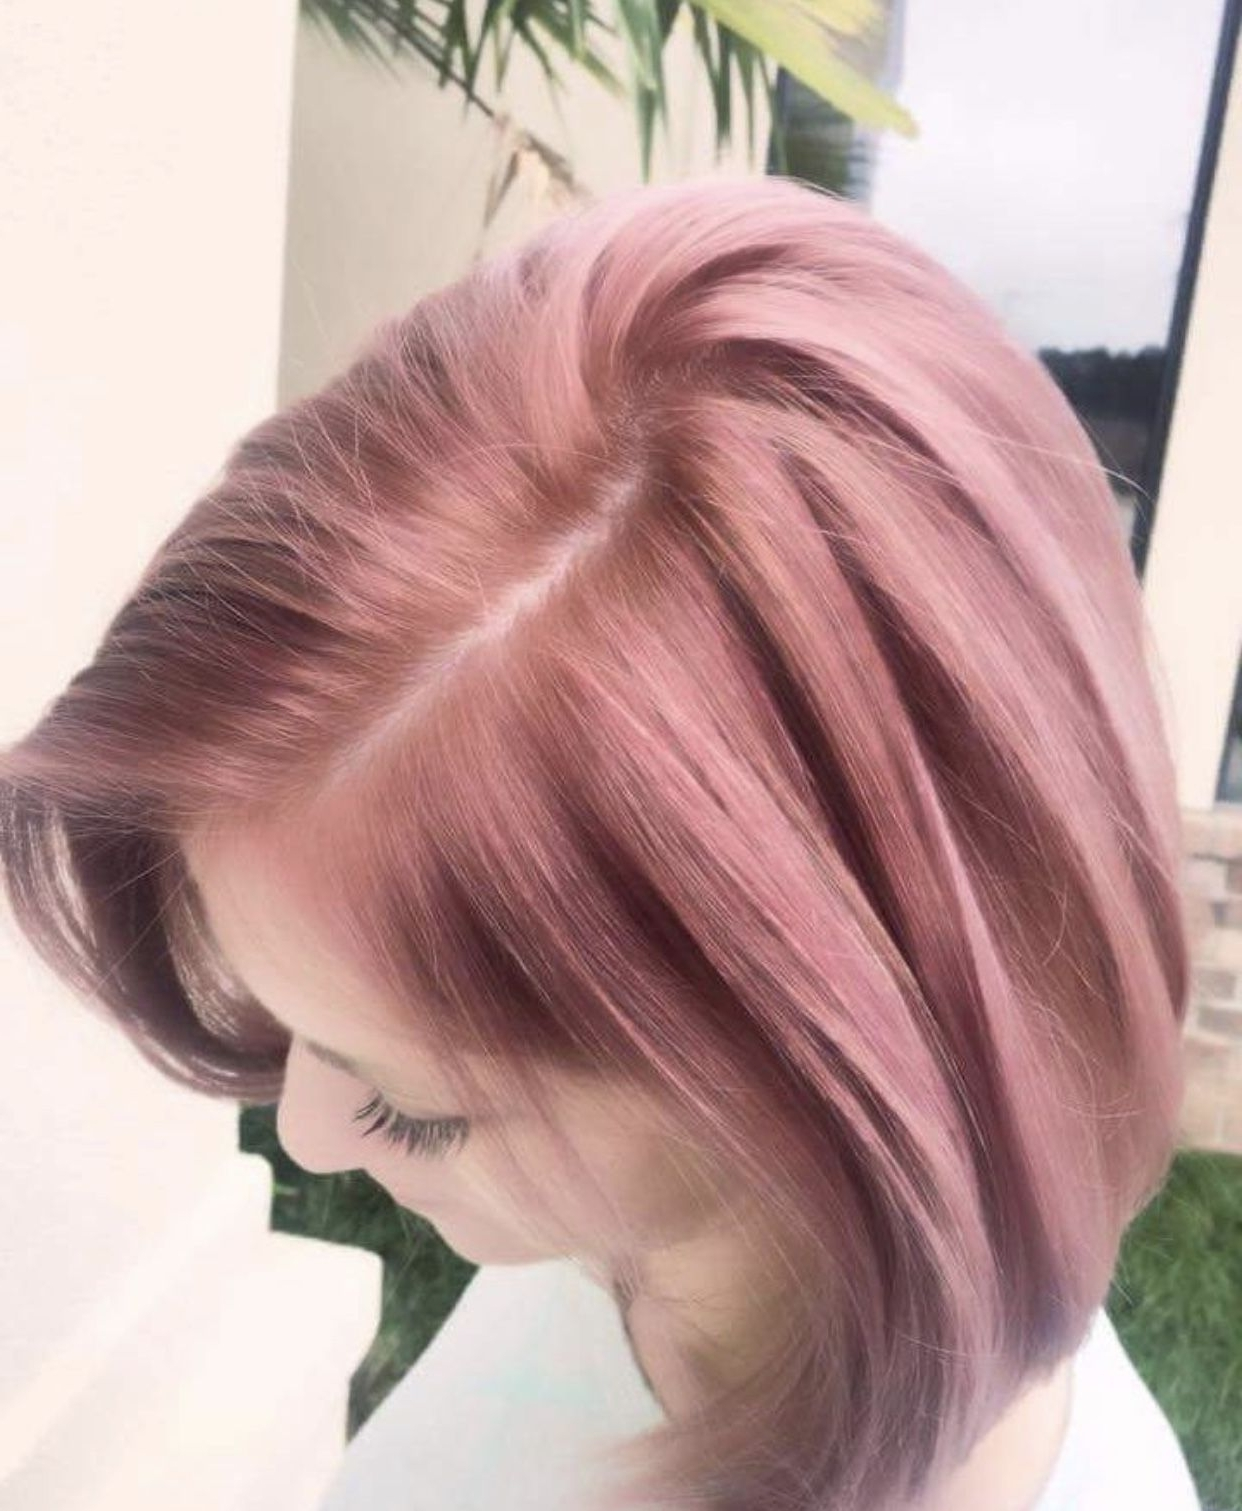 Rosewoodaveda Artist Amanda Smith At Spa Concepts In Shreveport Throughout Most Current Rosewood Blonde Waves Hairstyles (Gallery 11 of 20)